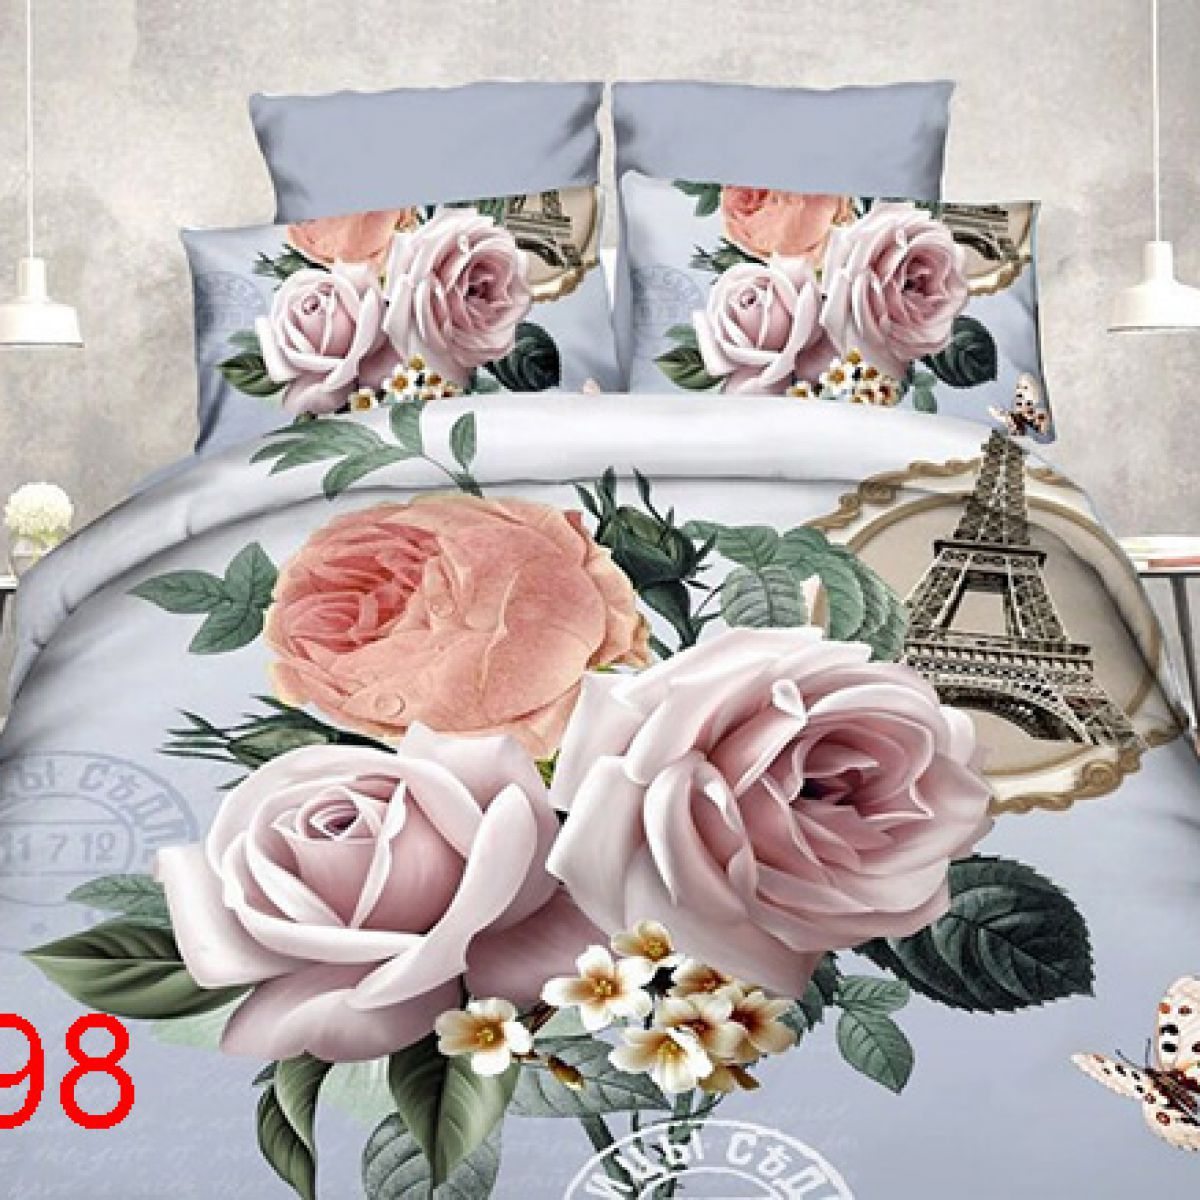 3D Beddings - Antonio - AML-98- 160x200 cm - 4 pcs